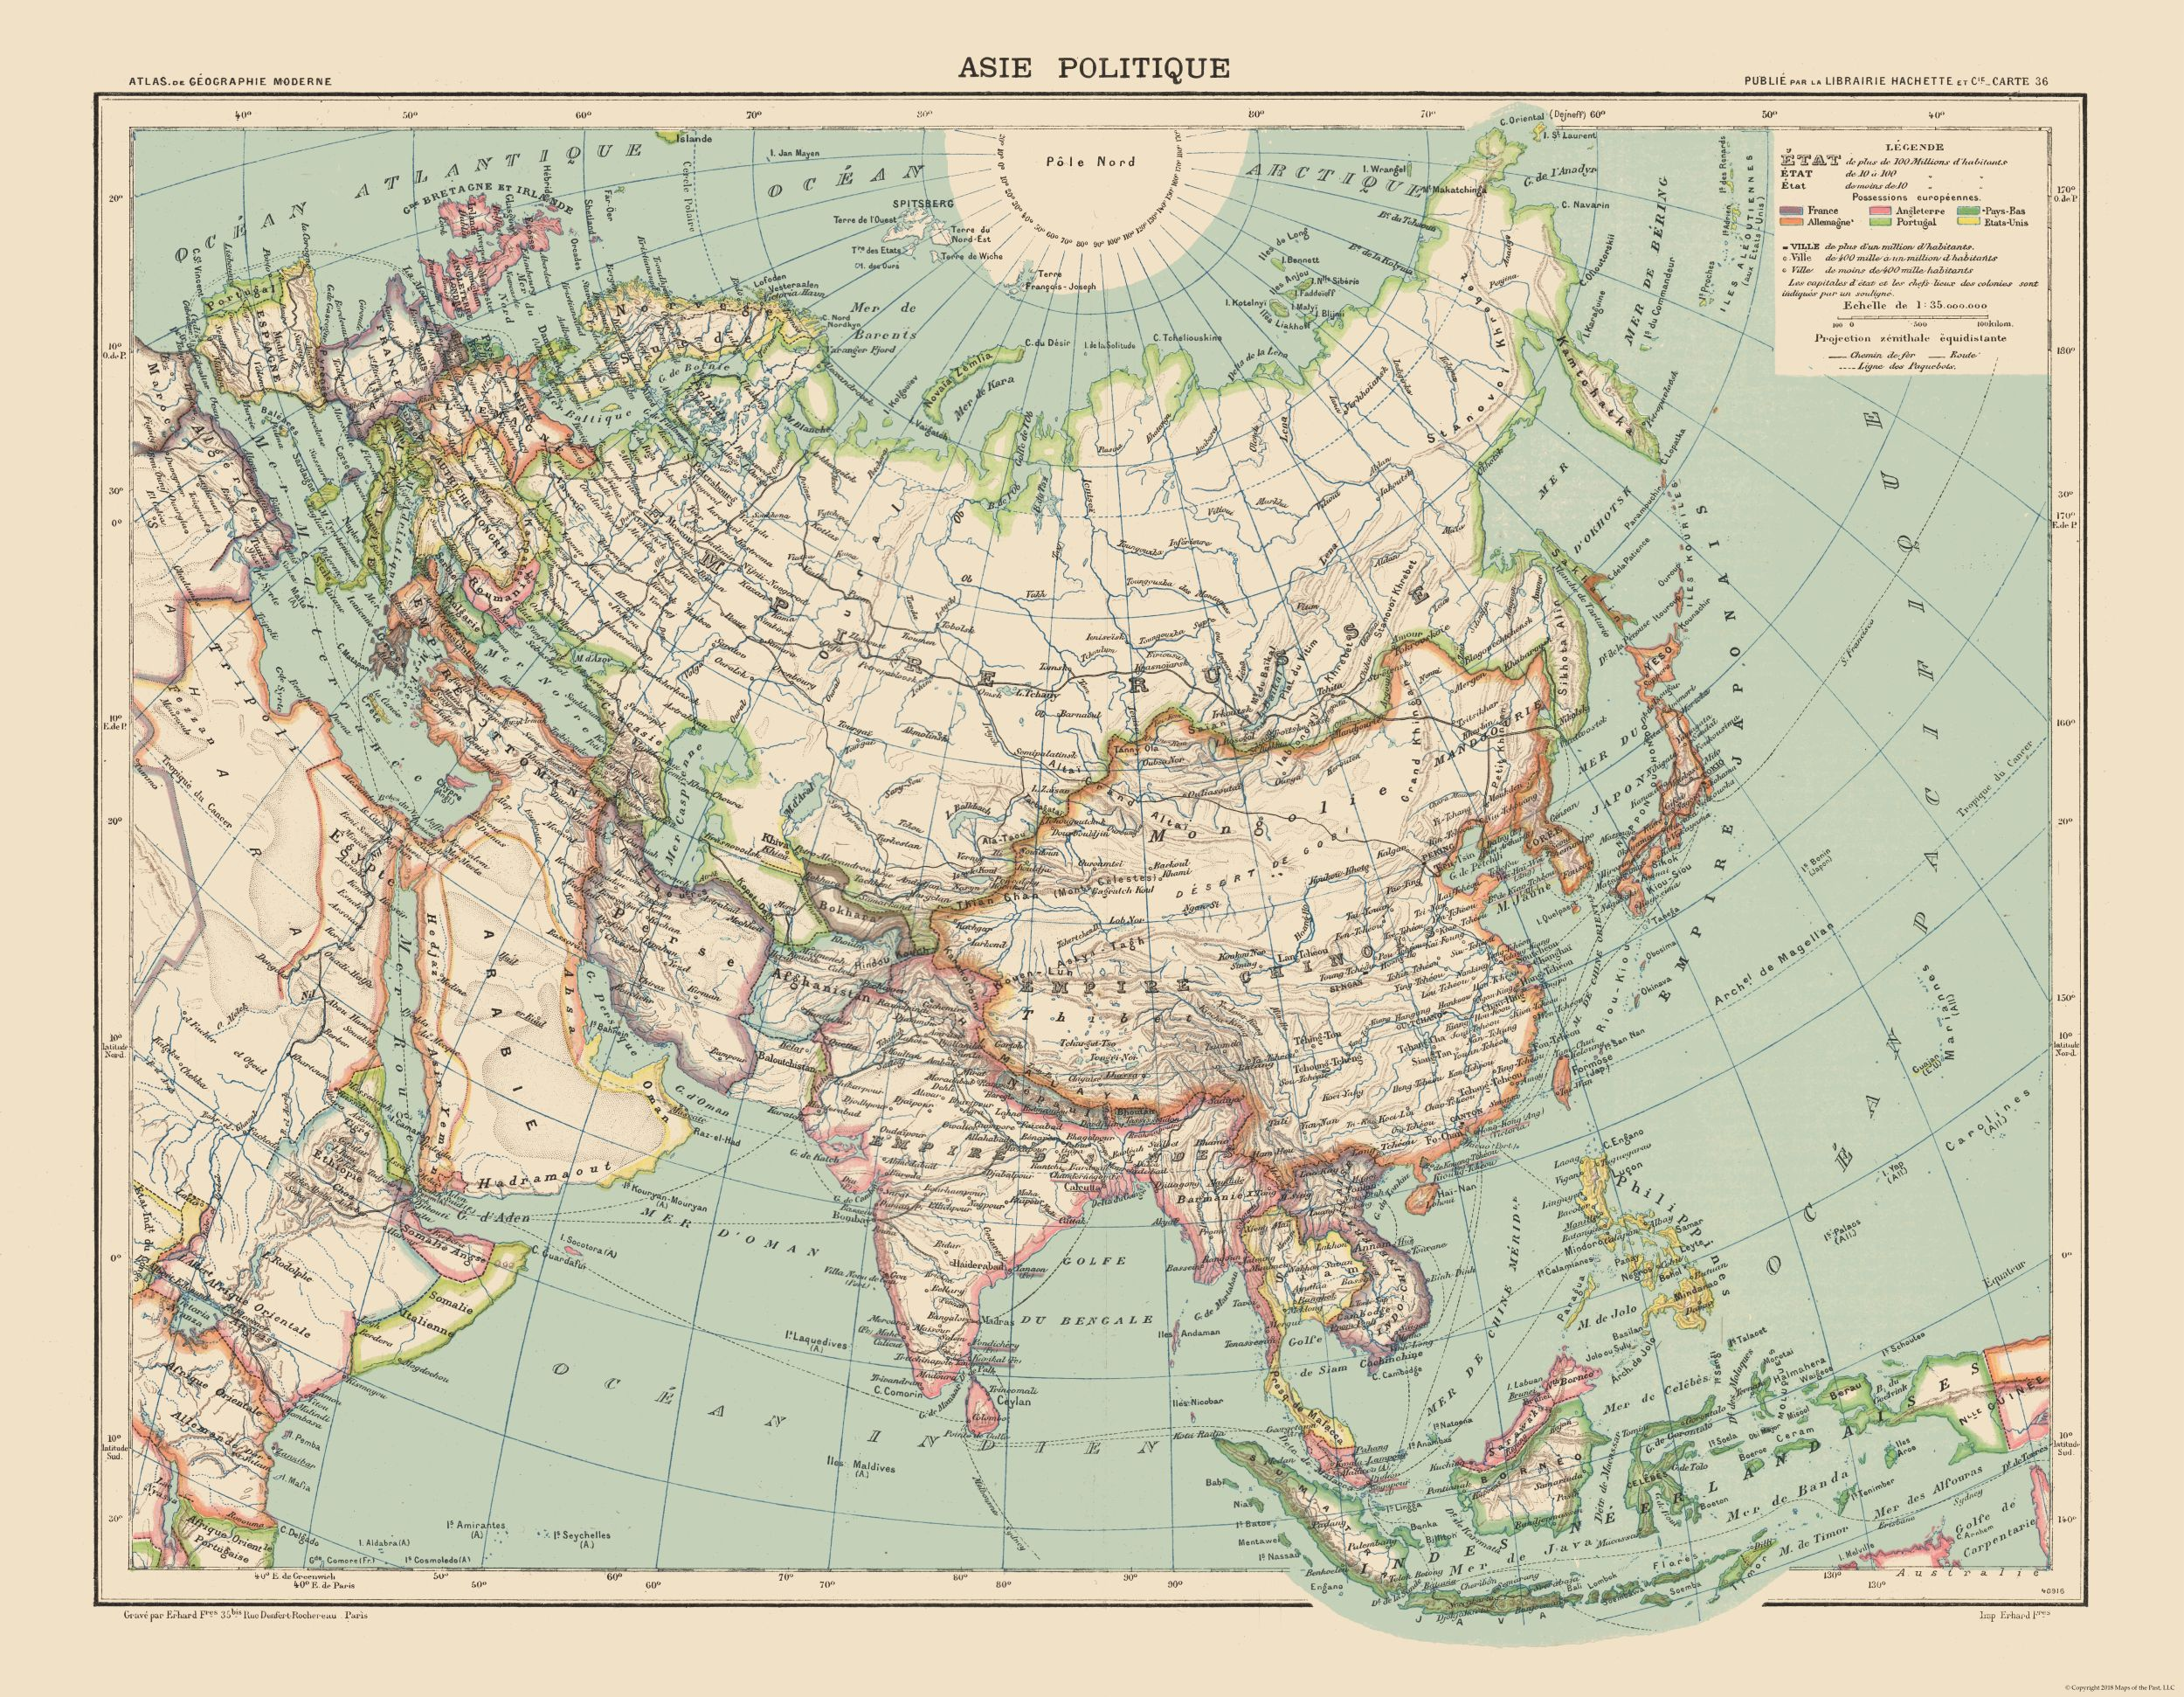 International Map - Political Map of Asia - Schrader 1908 - 29.62 x on large map of asia, google map of asia, political features of asia, pdf map of asia, physiographic map of asia, spanish map of asia, zoom map of asia, interactive map of asia,